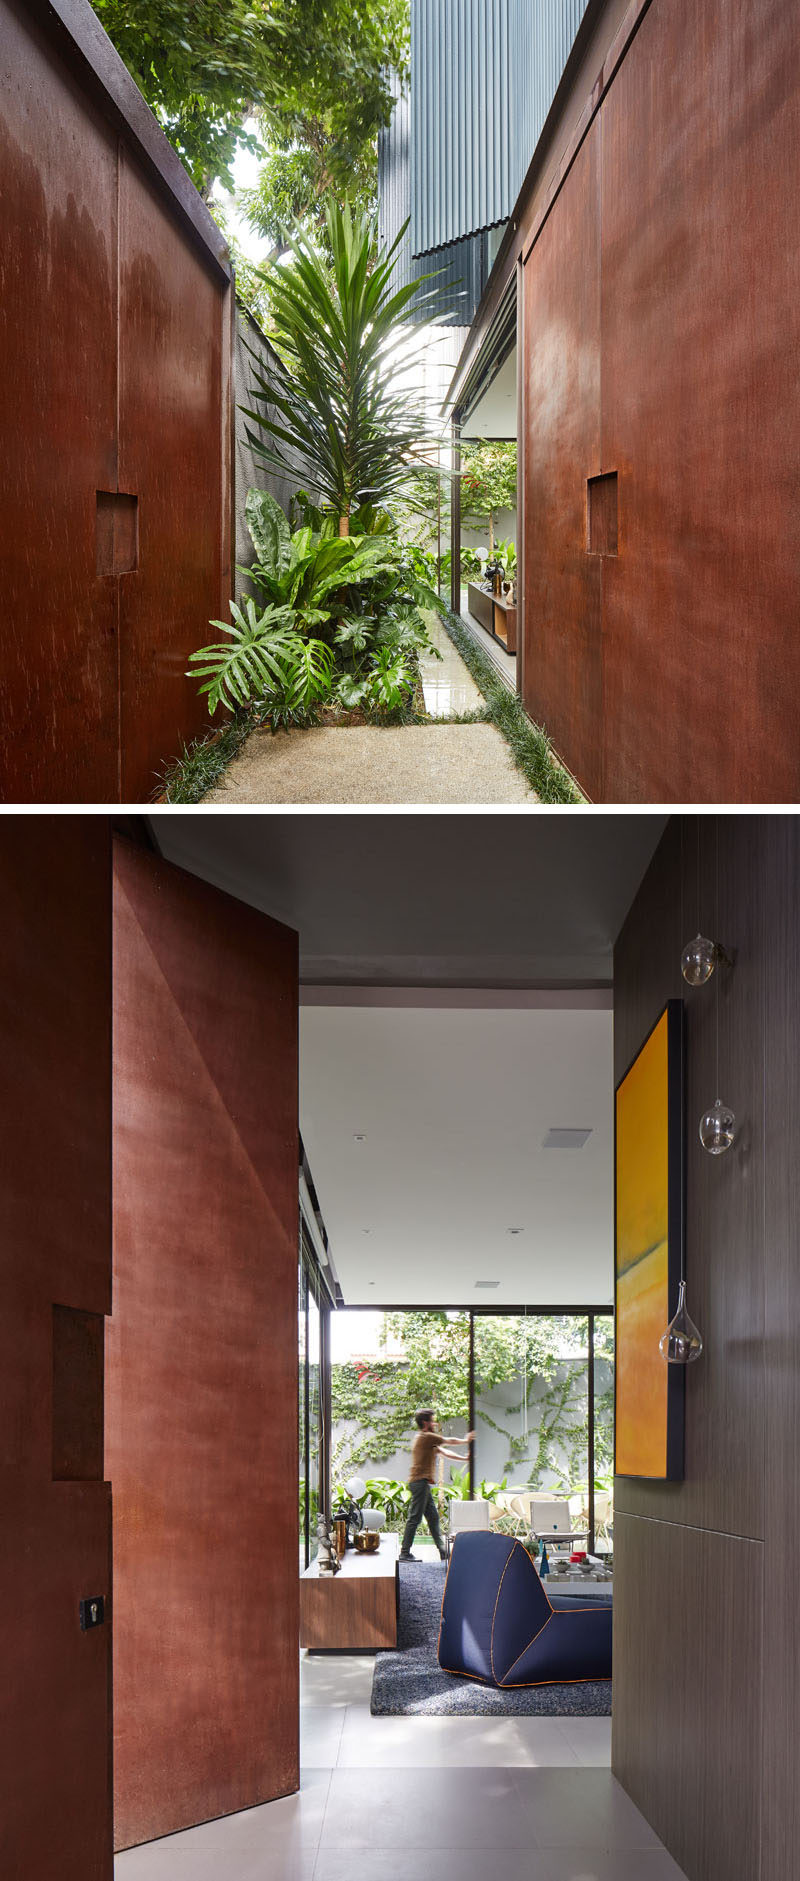 The large weathering exterior steel gate on this modern house opens to reveal an entryway with a garden and access to the interior through additional weathering steel pivot doors. #WeatheringSteelDoors #FrontDoor #Garden